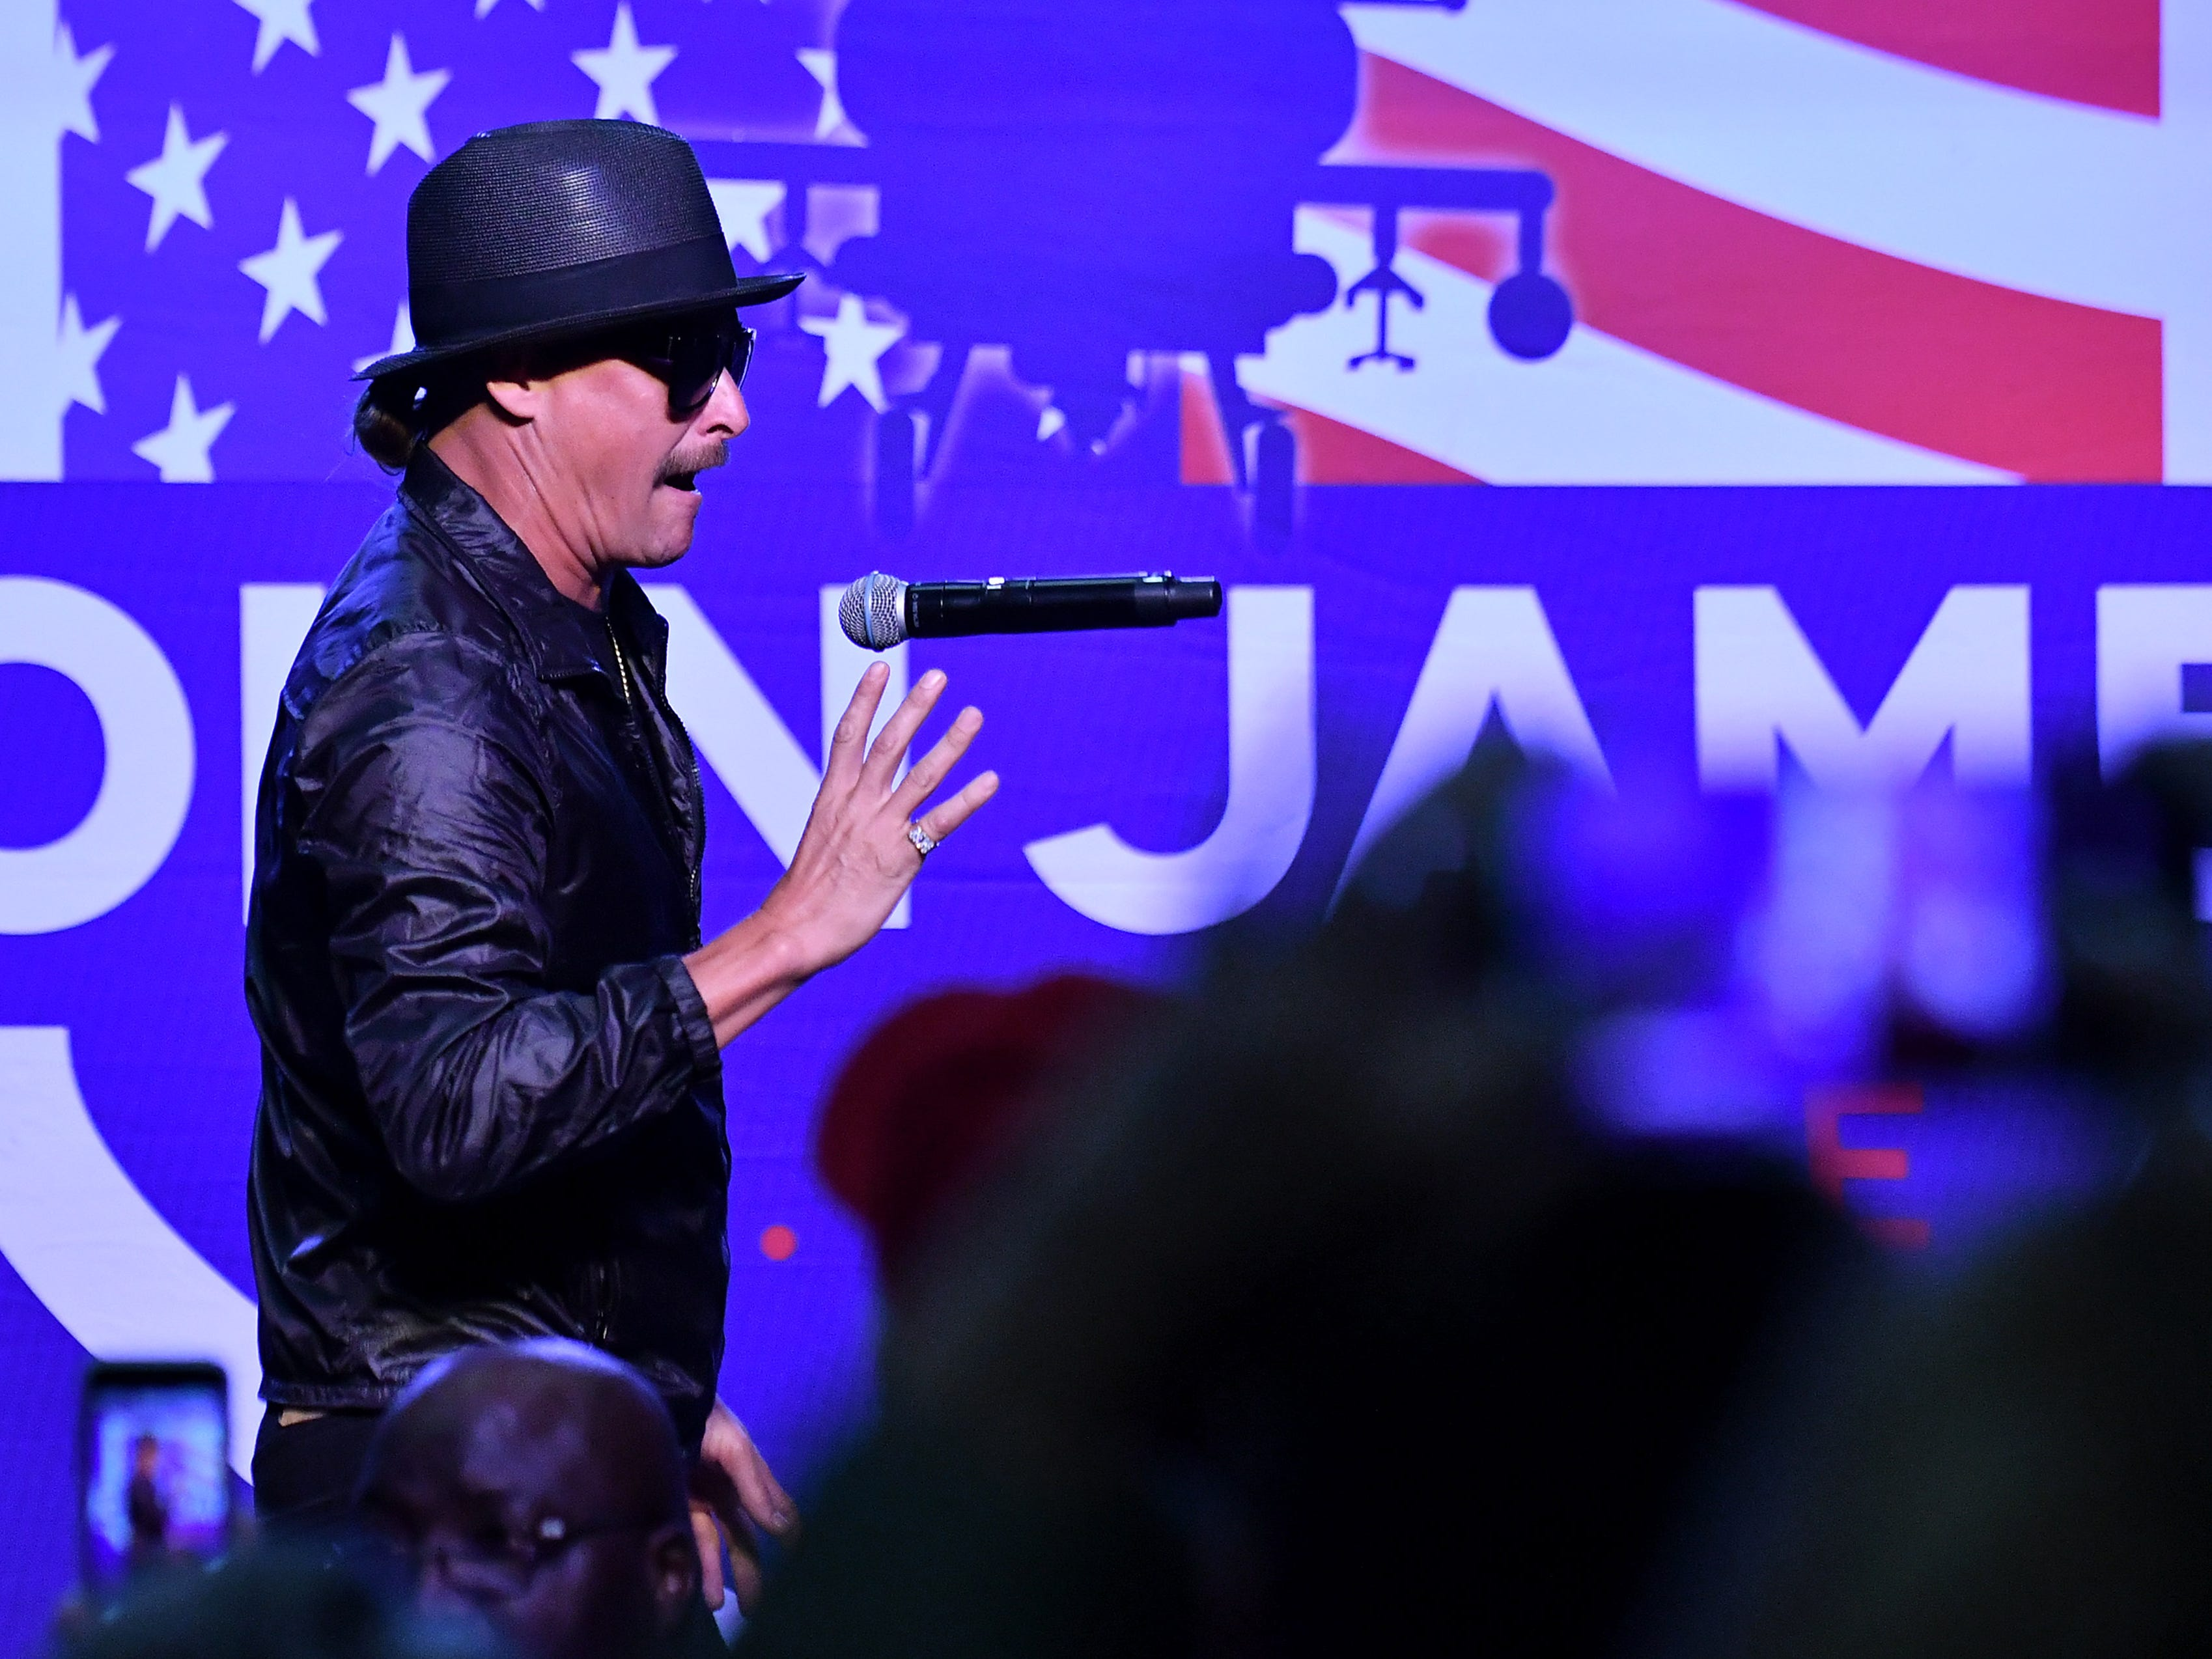 Kid Rock performs during the rally.